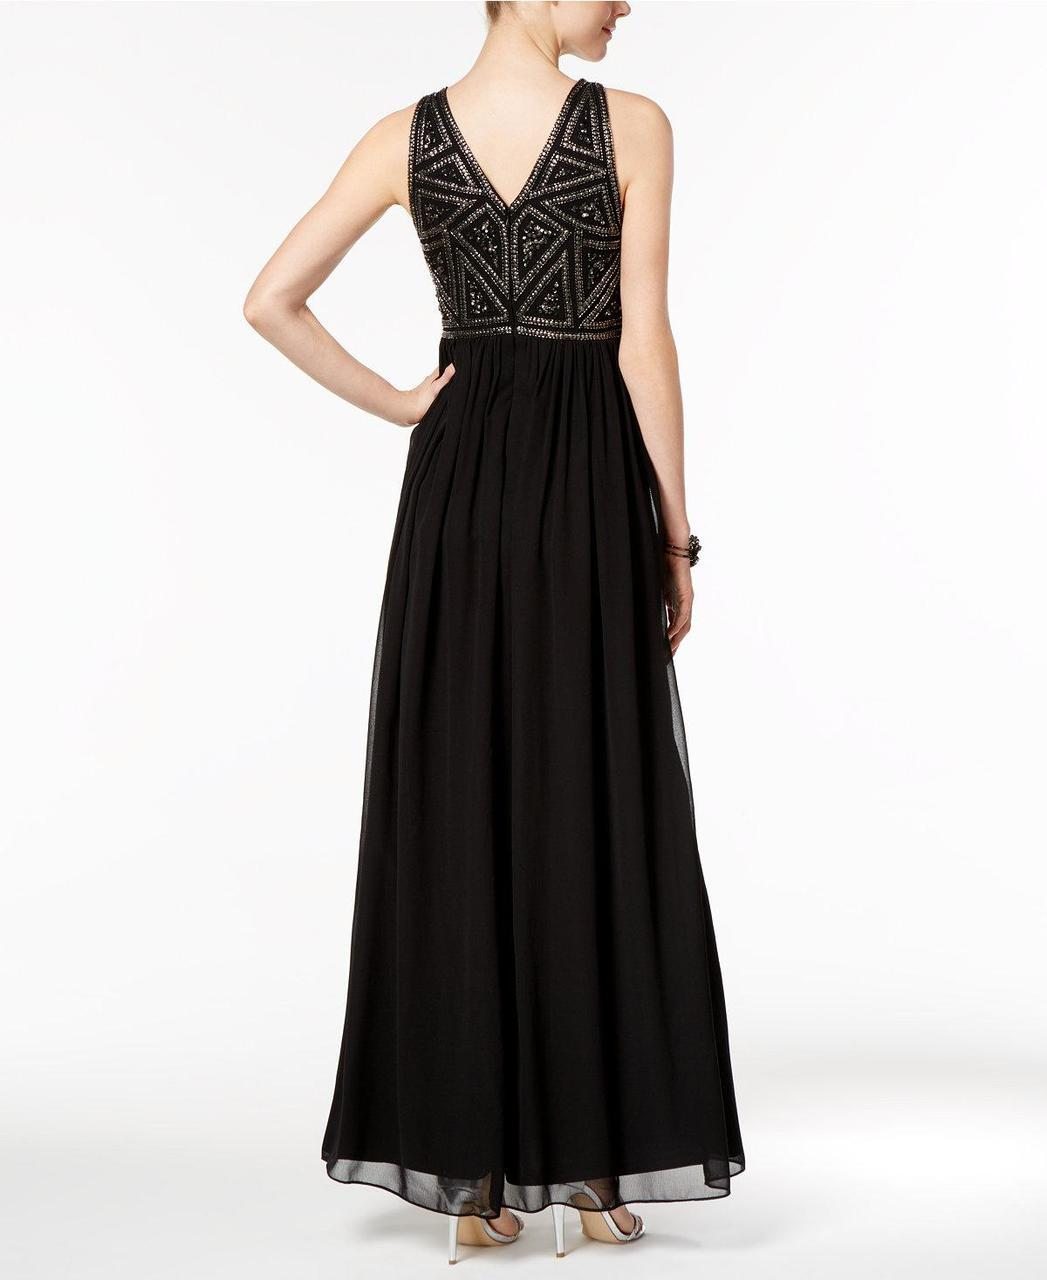 Adrianna Papell - 191910790 Embellished Jewel Ruched Gown in Black